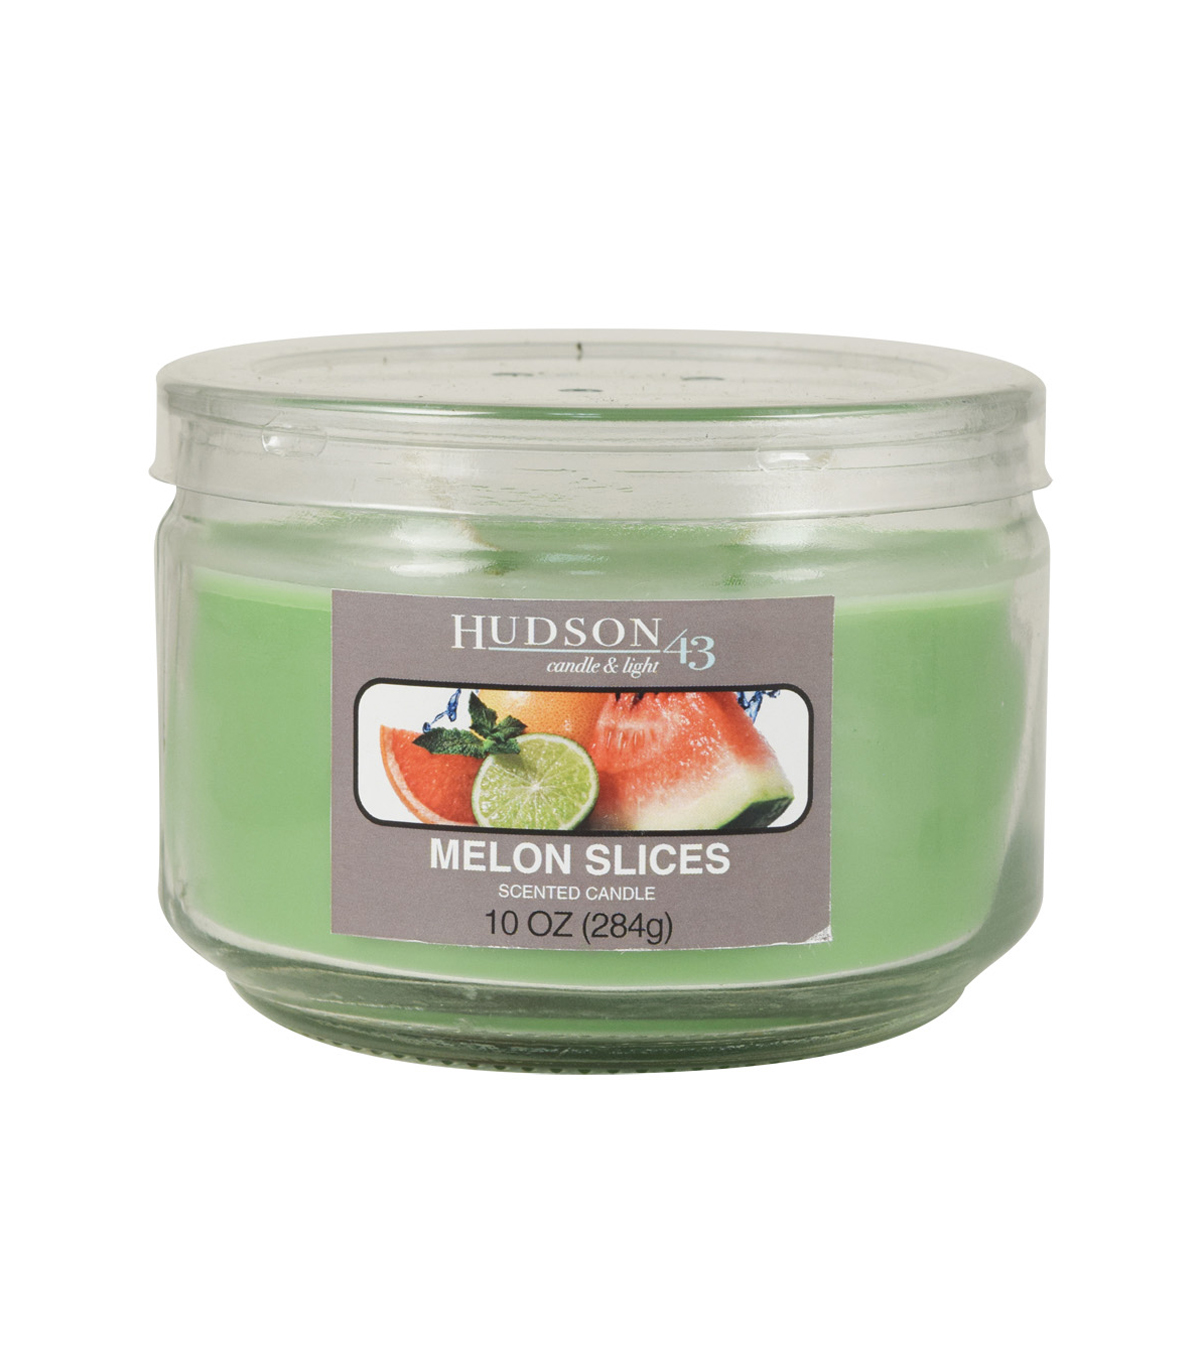 Hudson 43™ Candle & Light Collection 10oz Value Jar Melon Slices